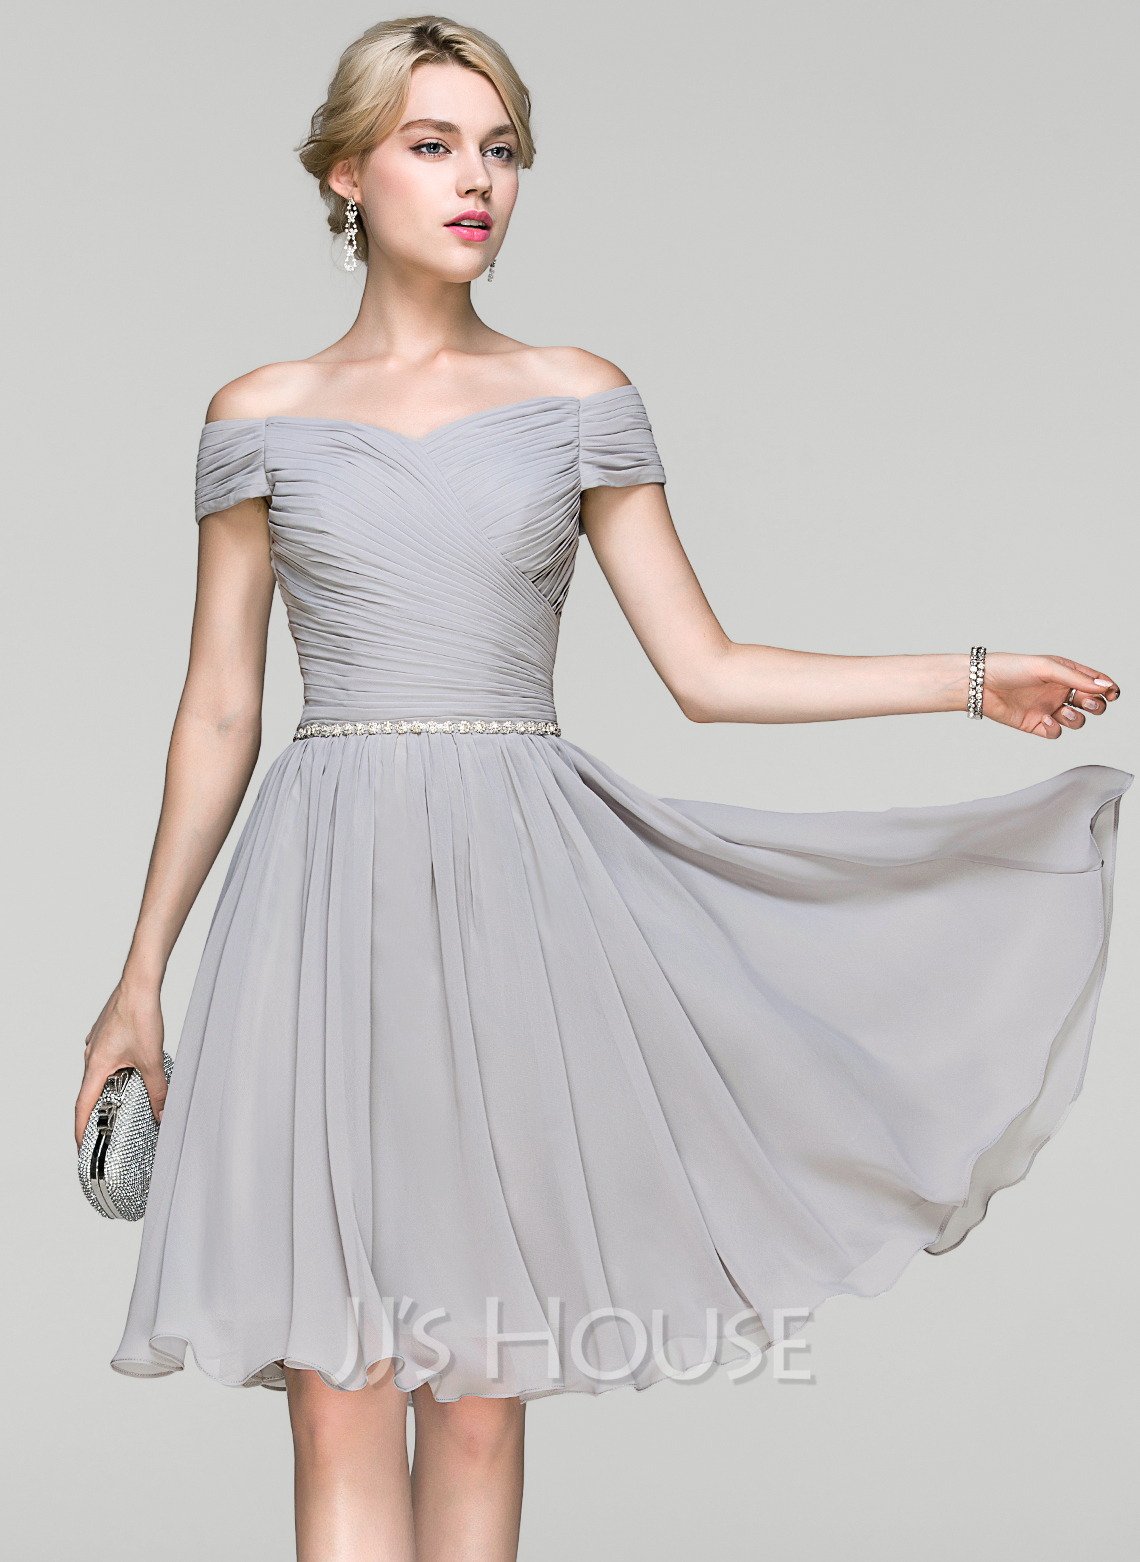 6a4a7385ef8 A-Line Princess Off-the-Shoulder Knee-Length Chiffon Cocktail Dress.  Loading zoom